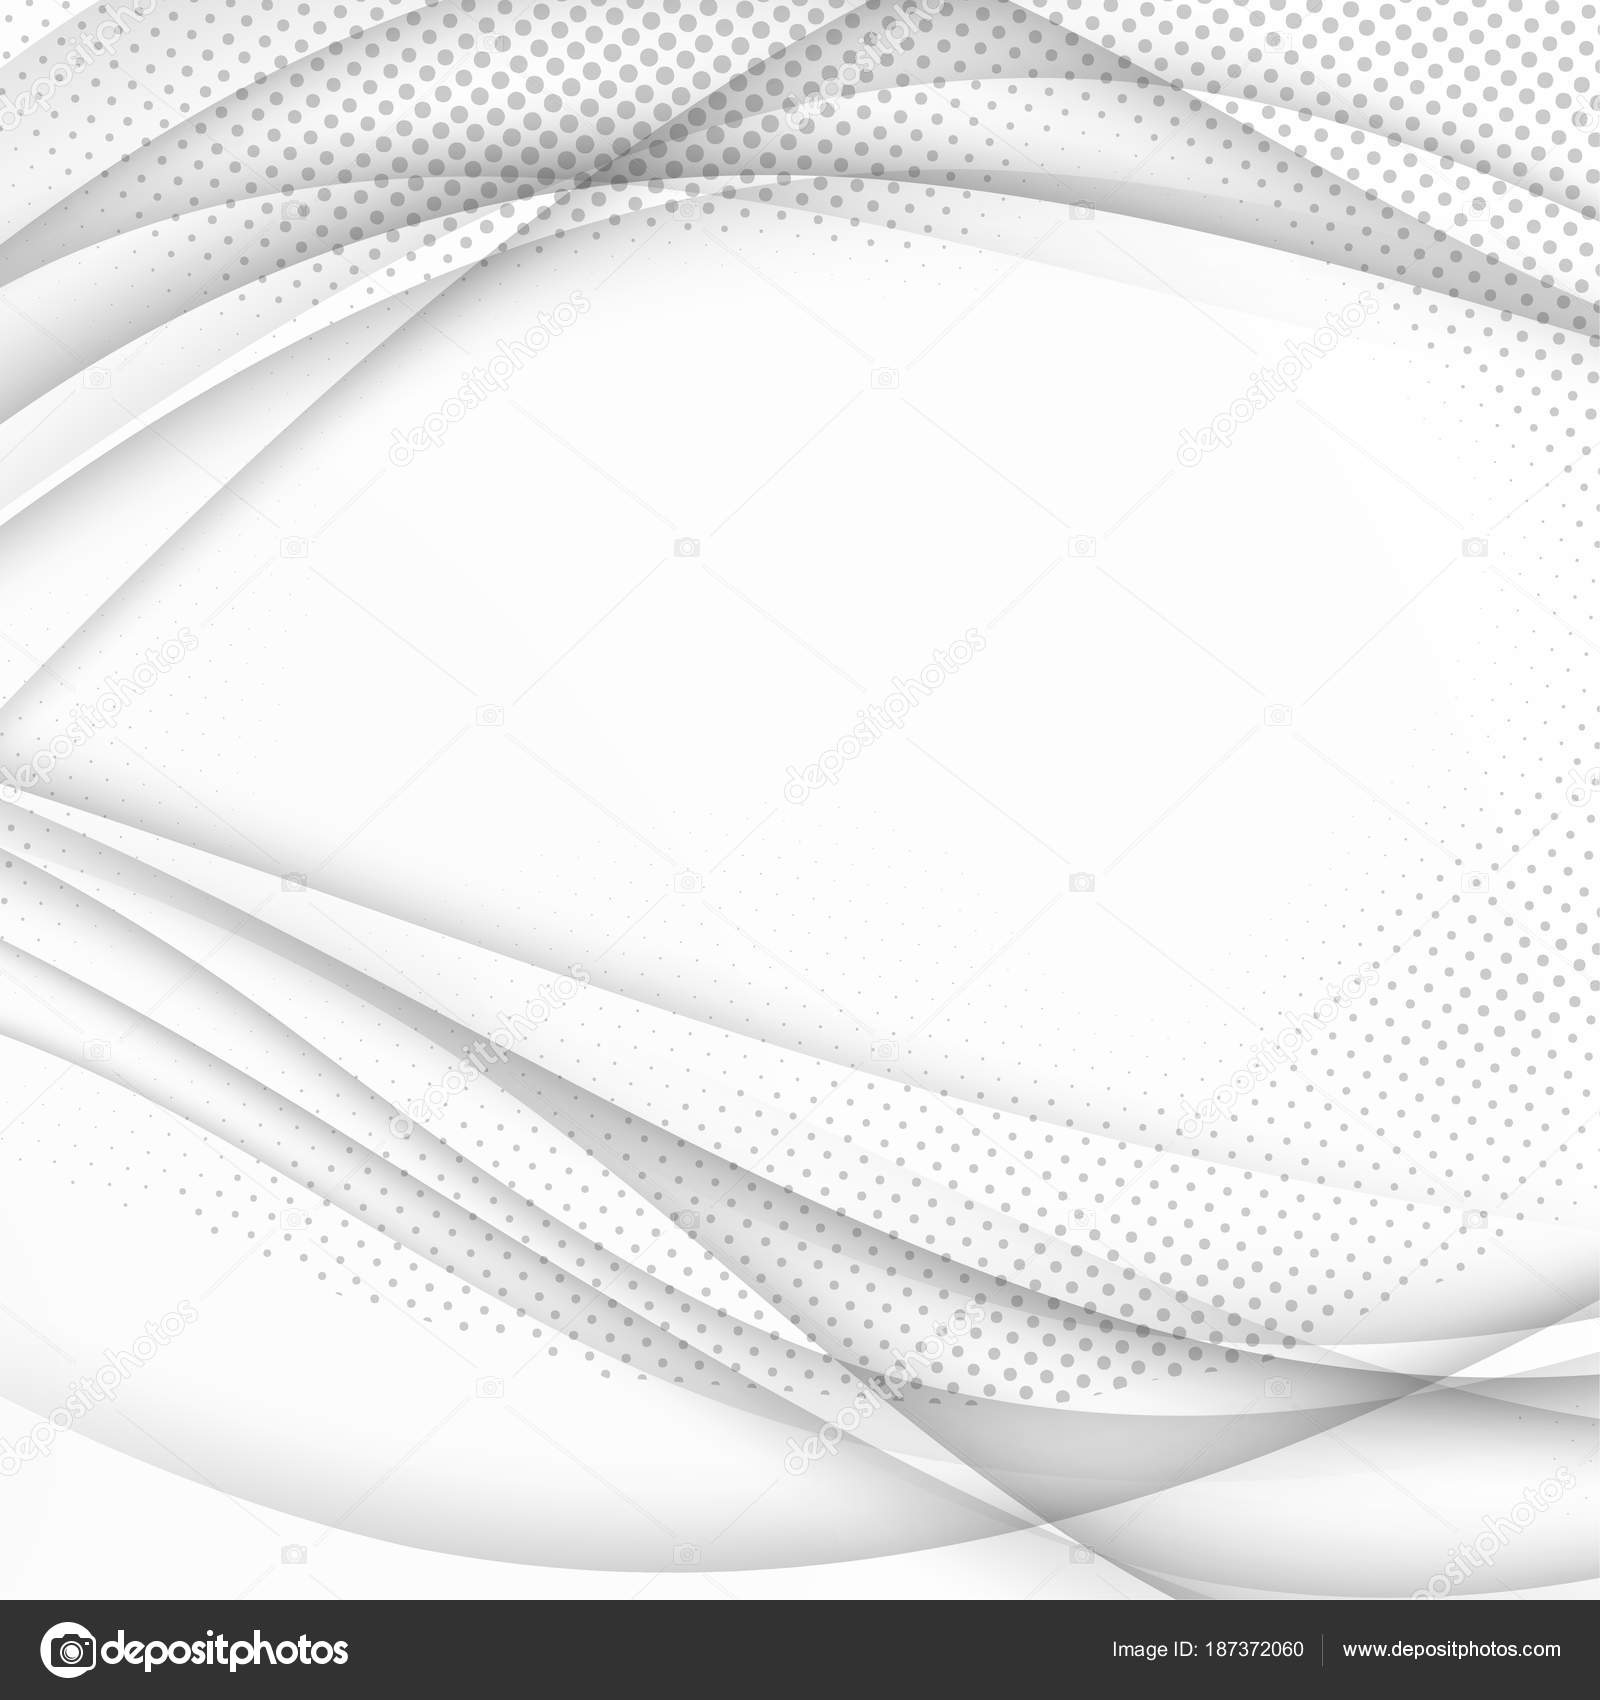 Smooth Halftone Grayscale Abstract Wave Background Template ...